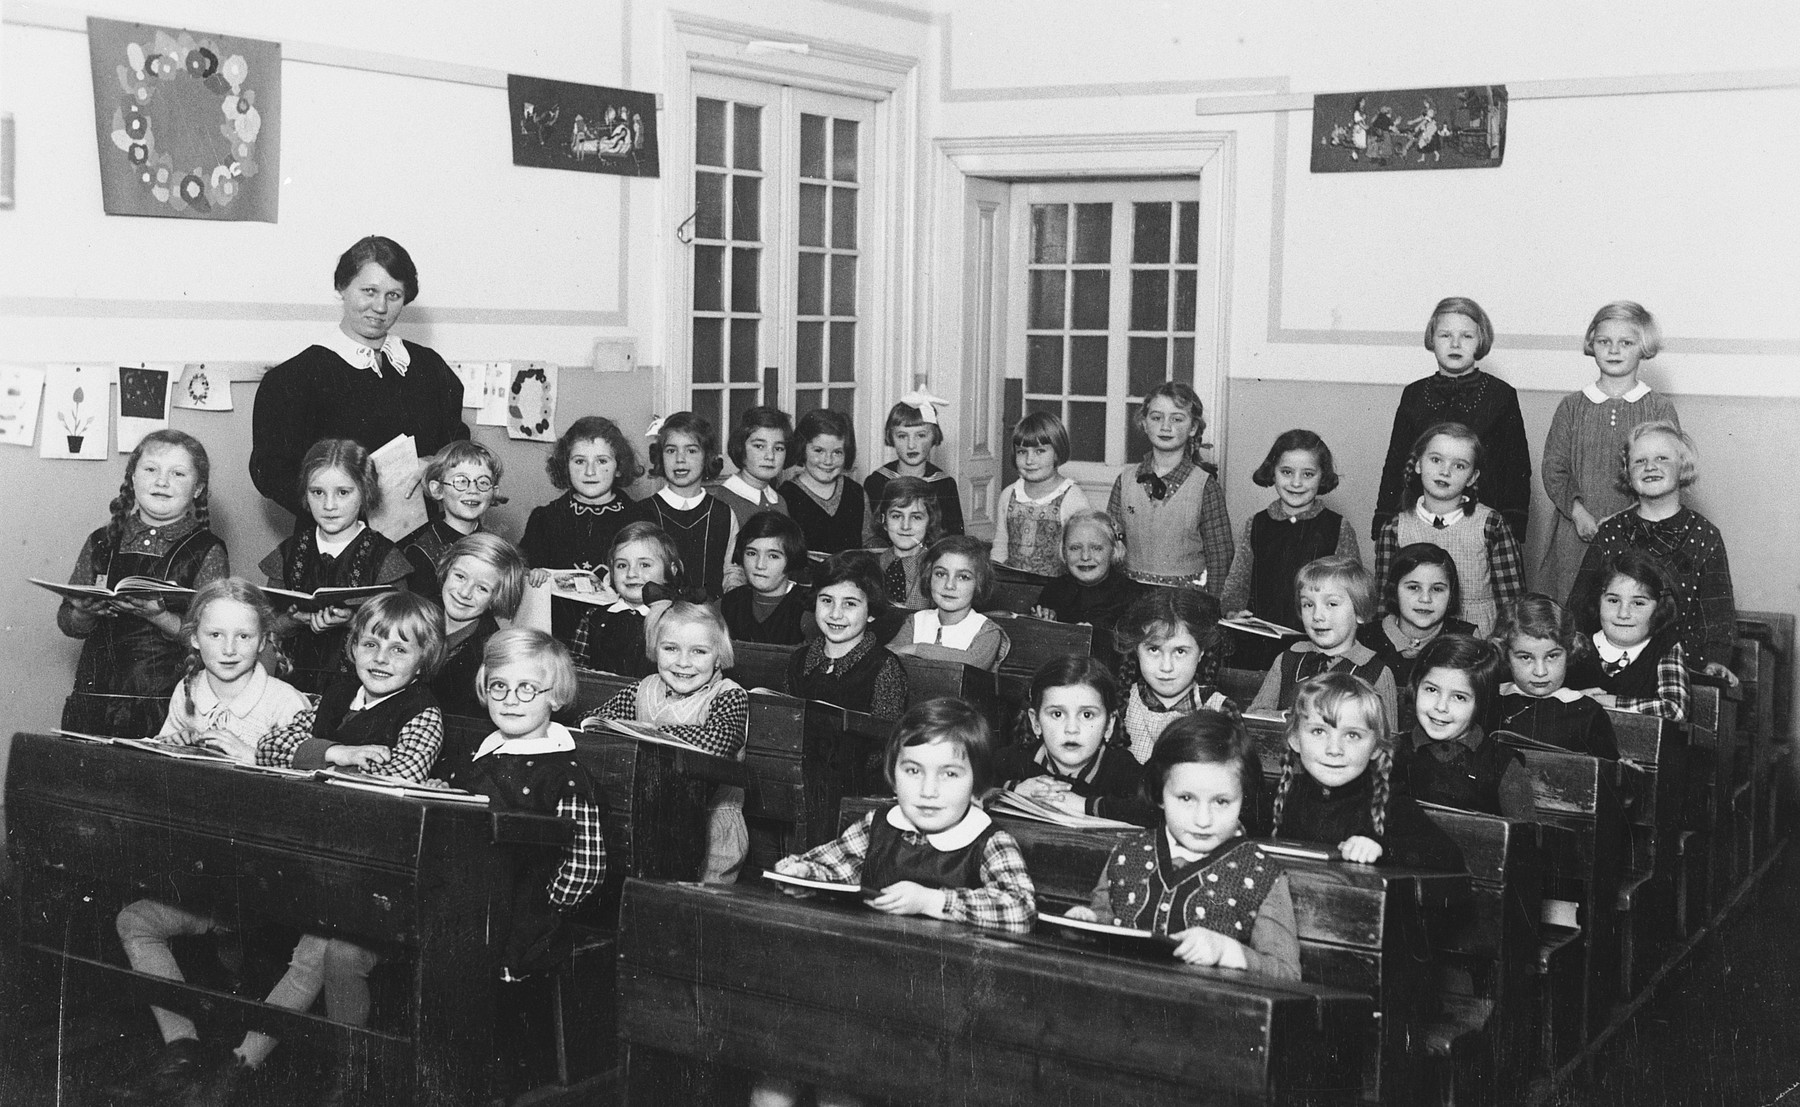 Austrian and Jewish children in the Schubert Schule in Vienna.  Pictured on the far left is the teacher, Hansi Lang.  Eva Weitzmann is seated in the fourth row, second from the right.